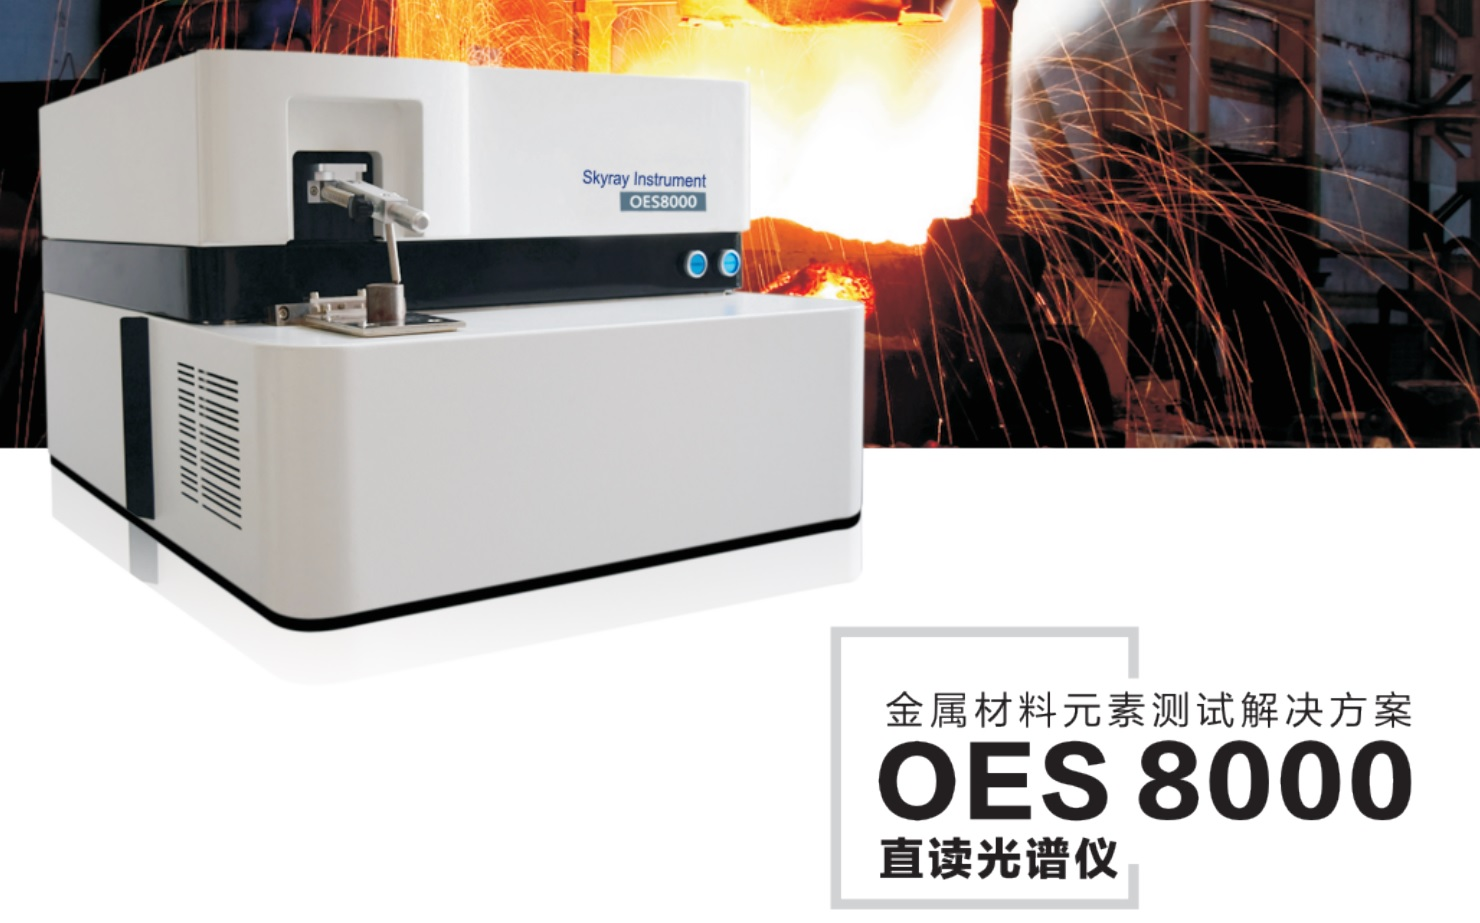 Jiangsu Skyray Instrument Co., Ltd.-OES8000